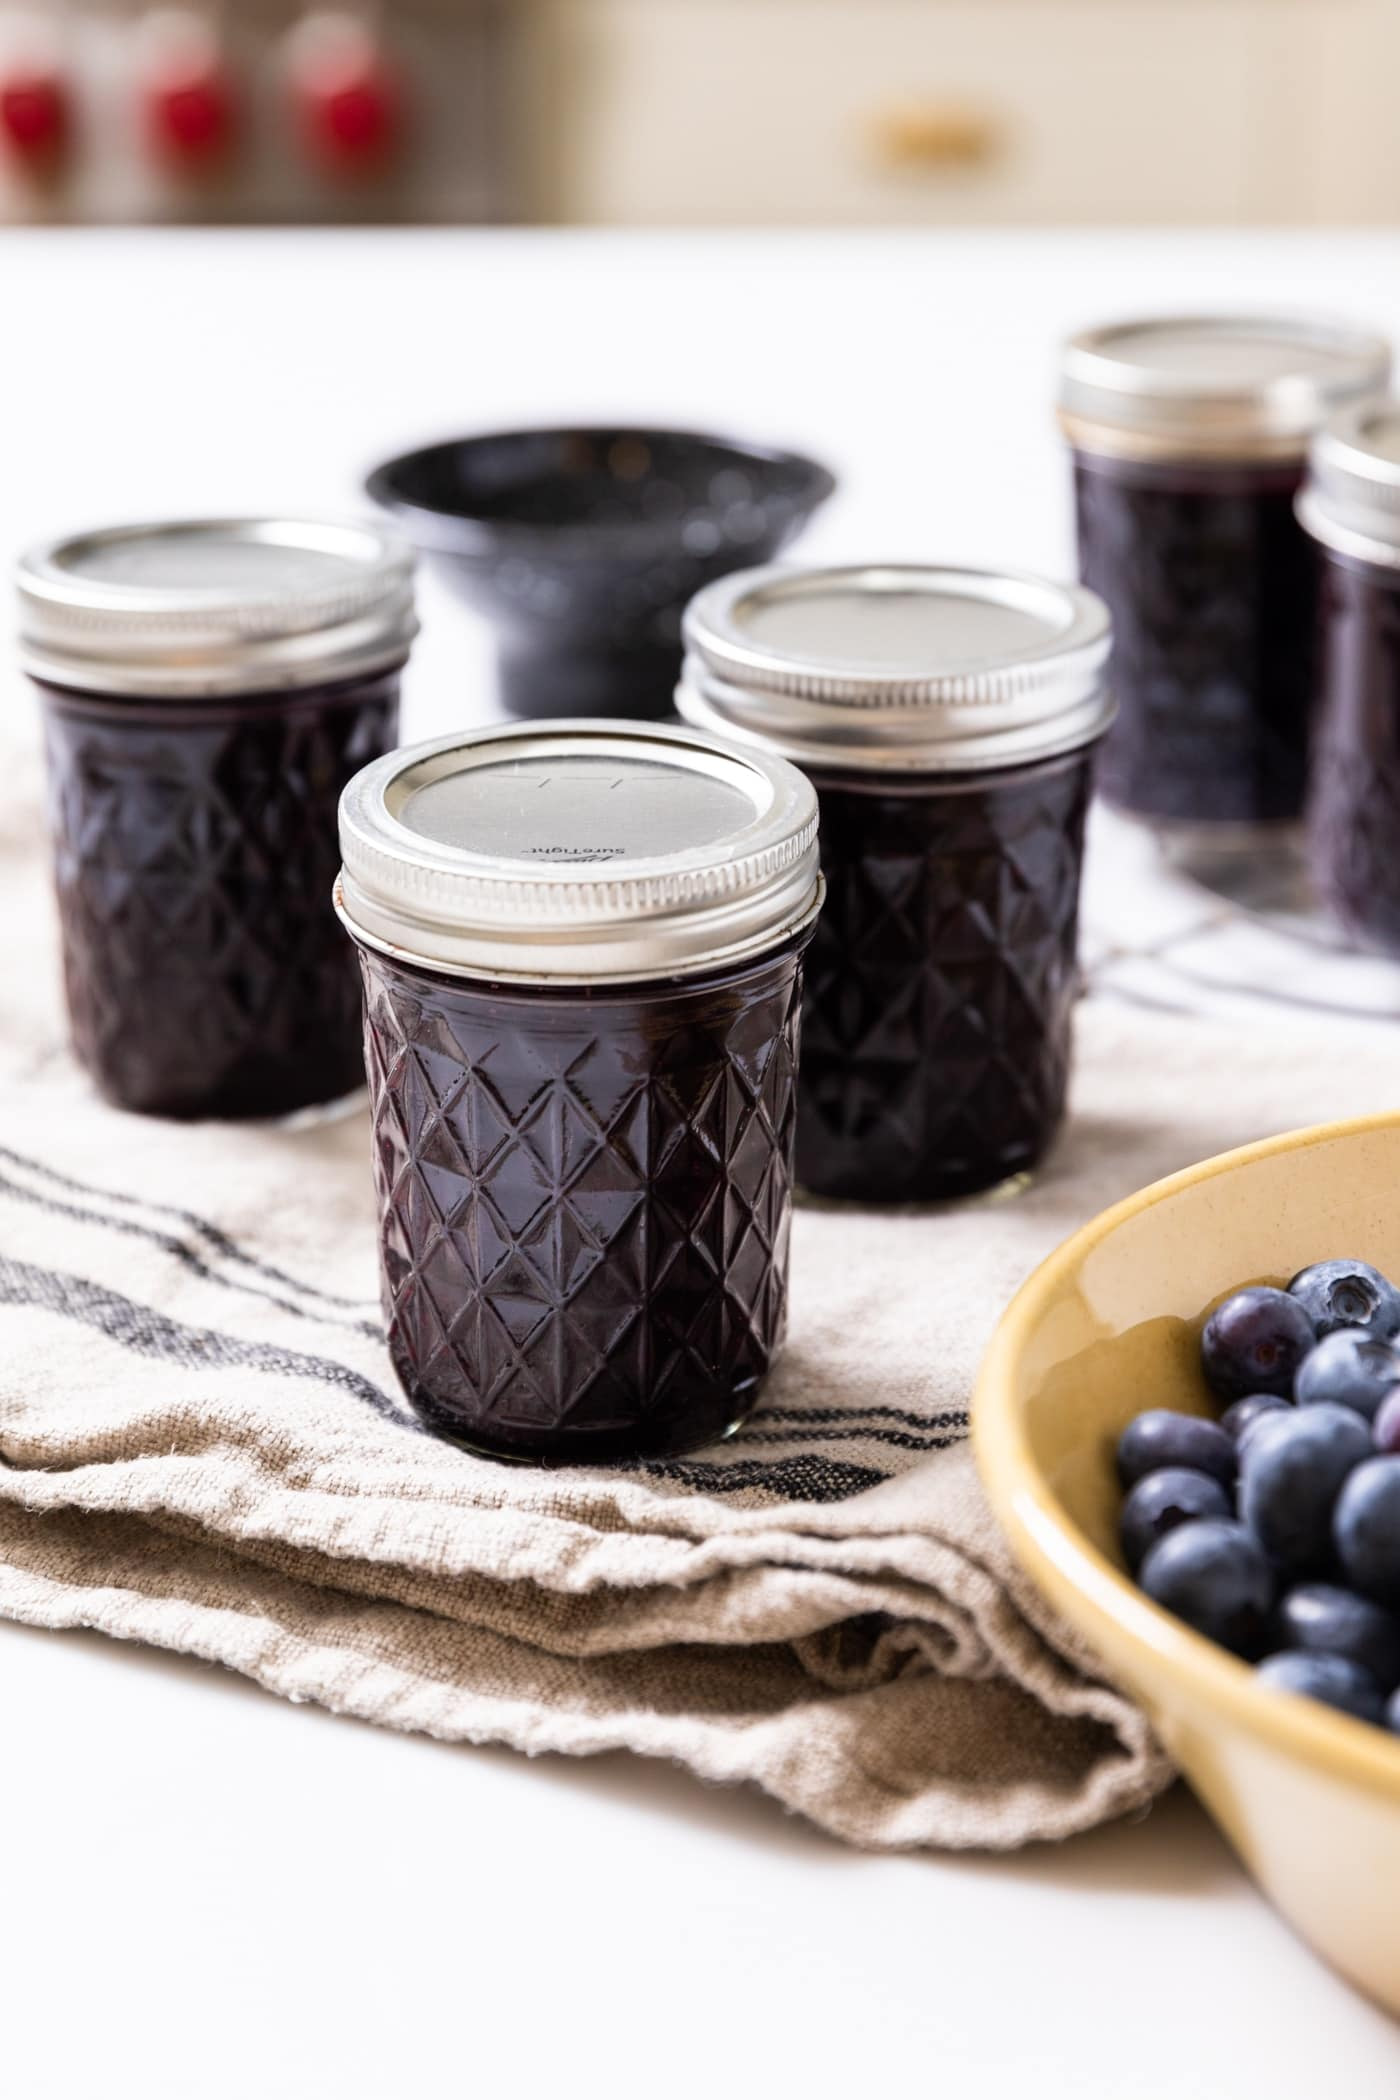 Glass jars with lids and rings on holding dark colored blueberry jam inside sitting on white countertop with bowl of blueberries in front